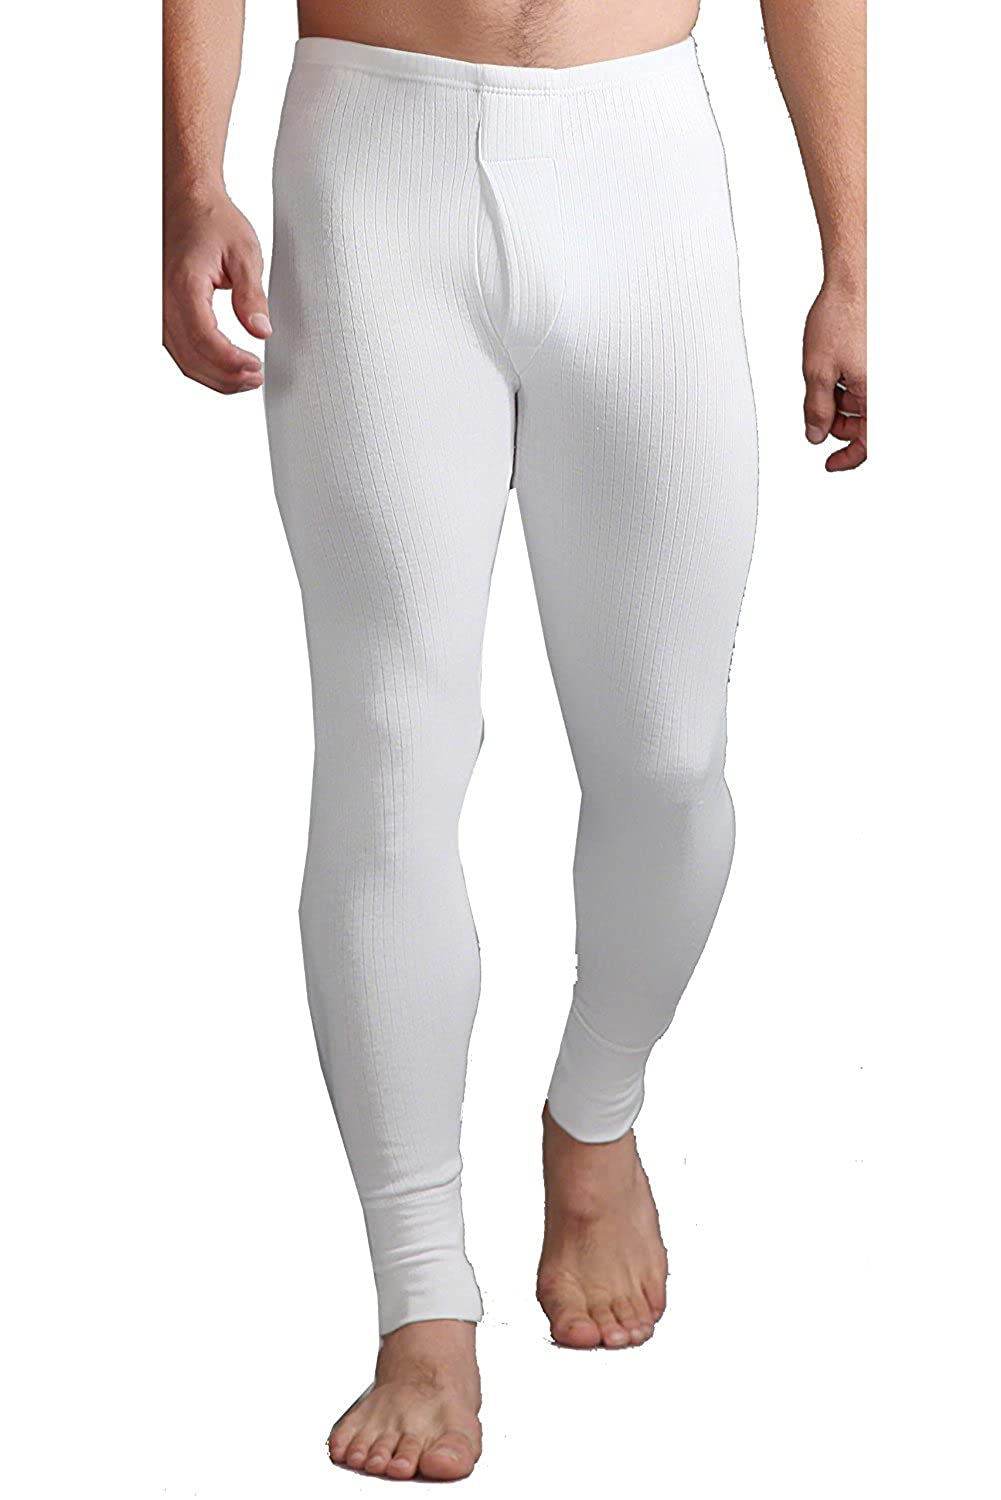 CL Mens New Cotton Winter Wear Thermal Long Johns Bottoms Pants Underwear Base Layer WHITE BLUE GREY S-2XL